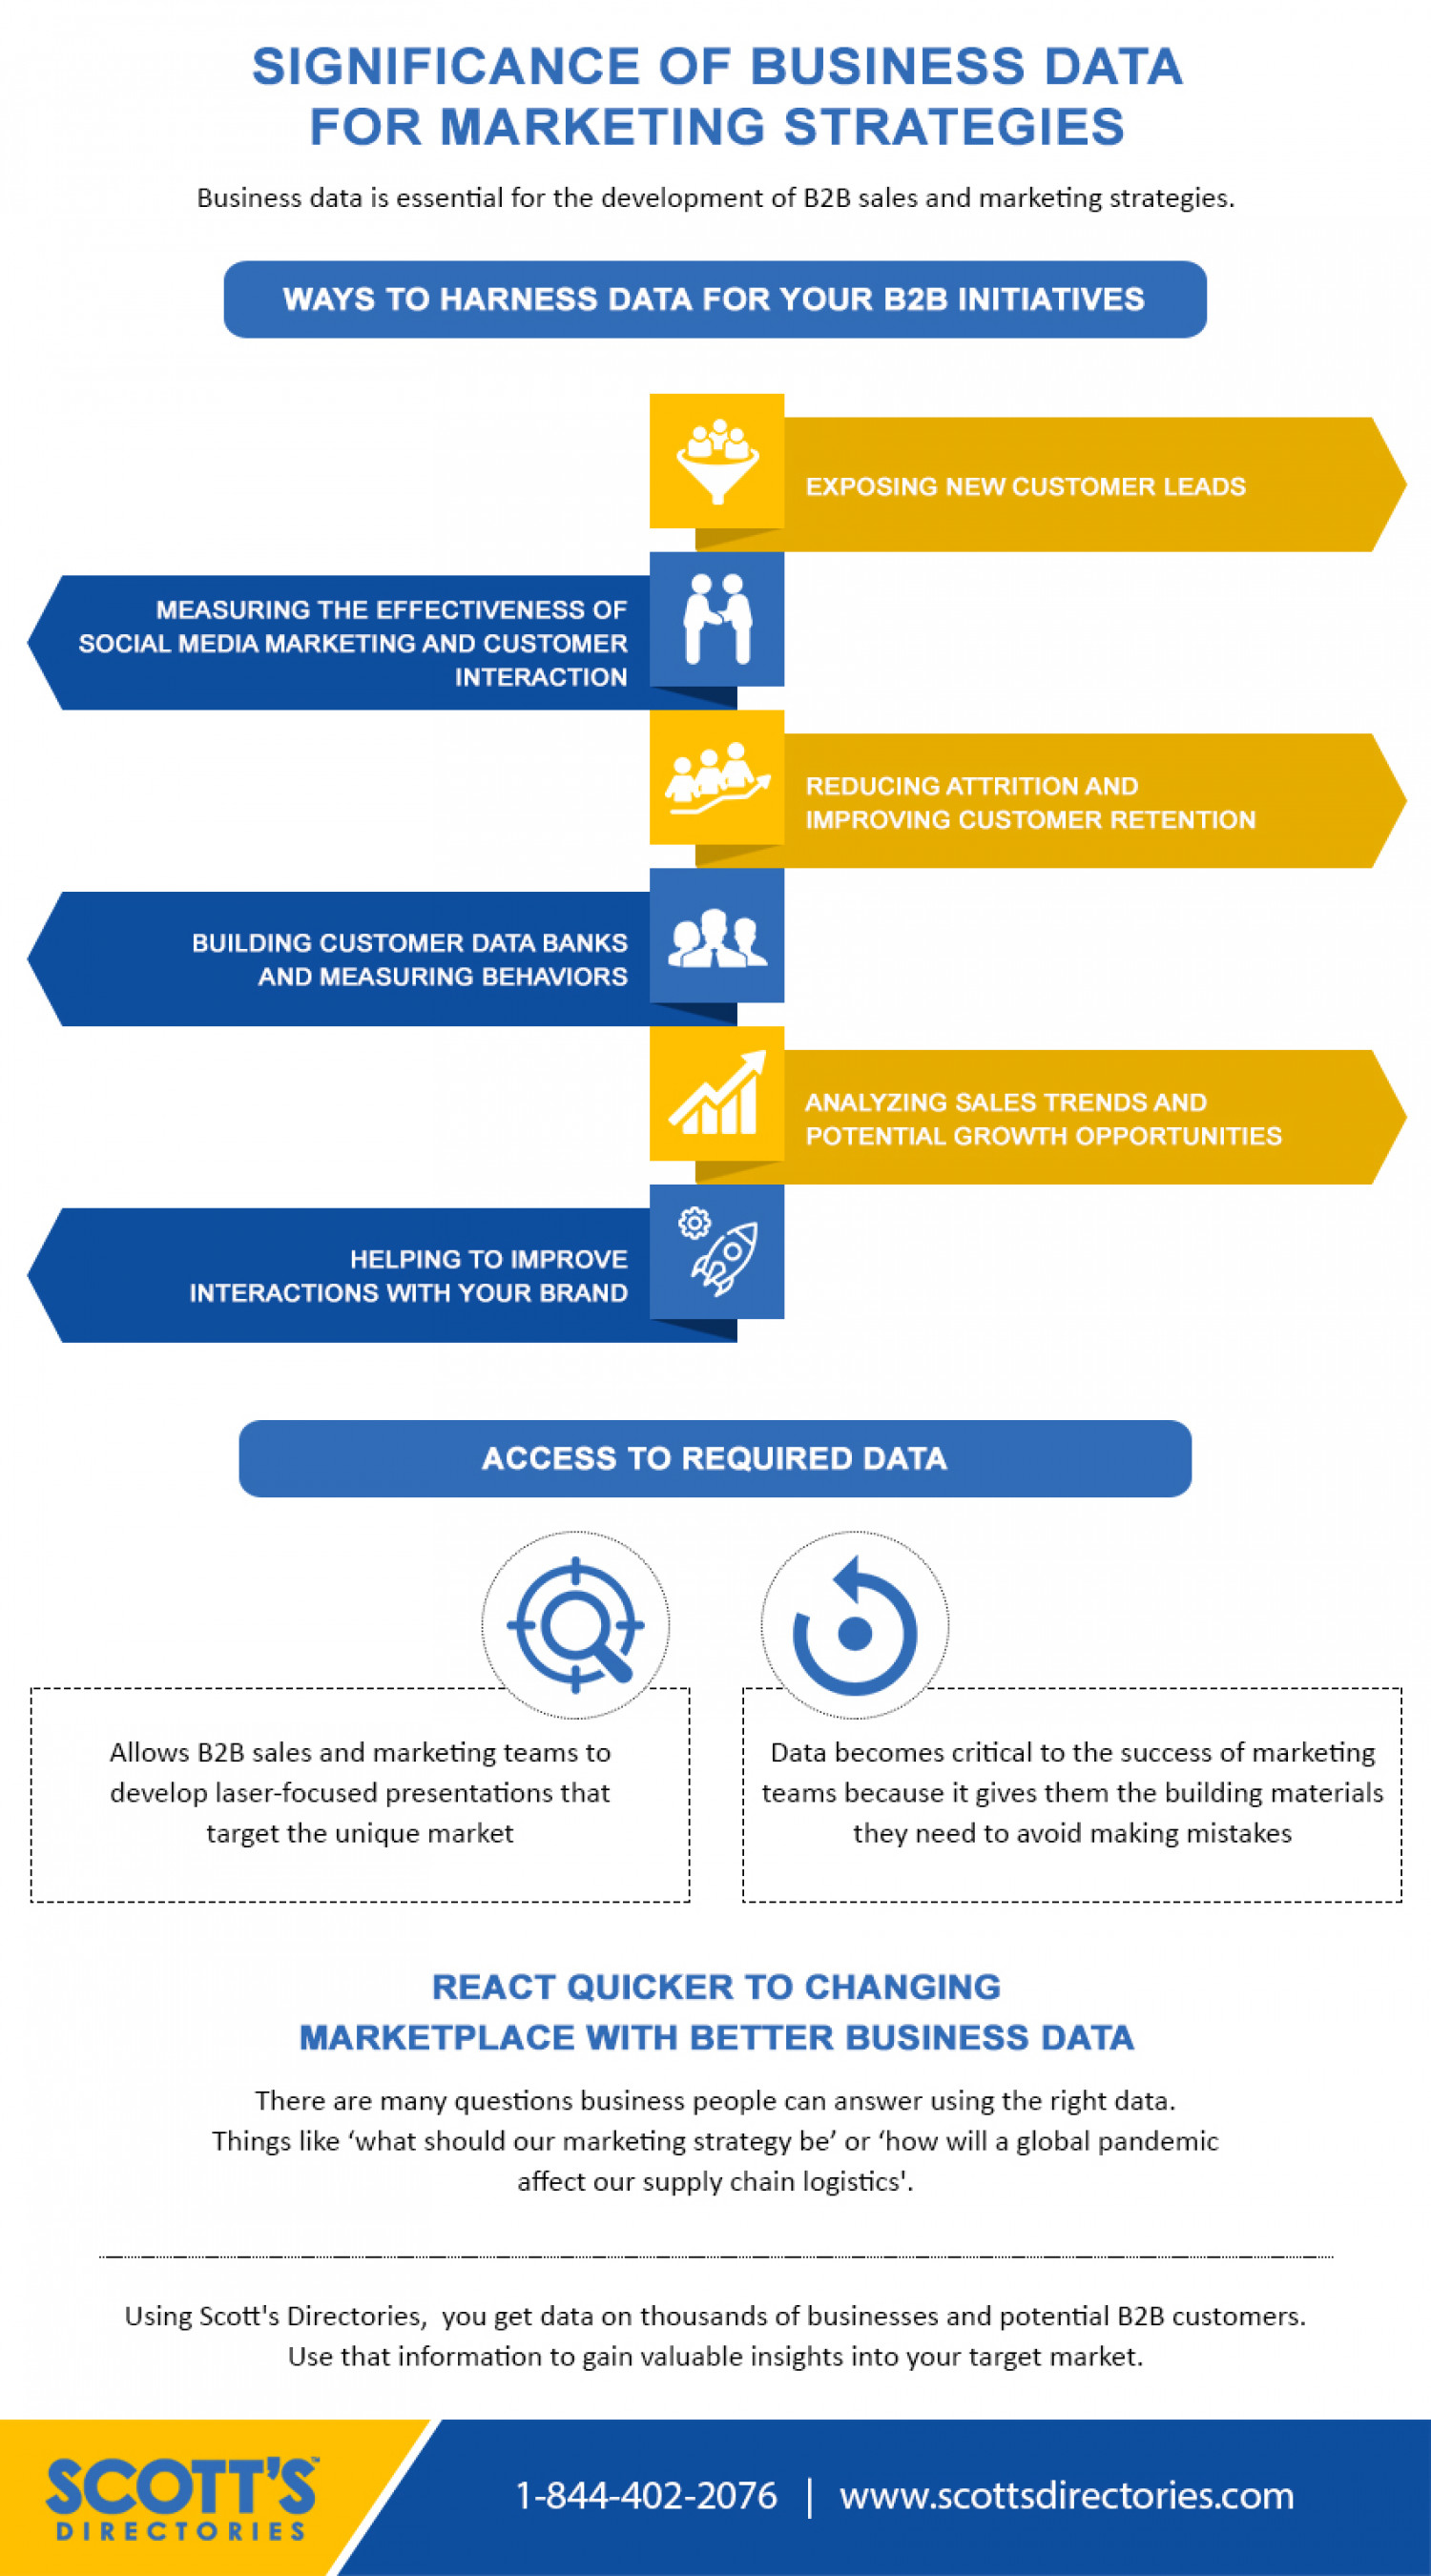 Significance of Business Data for Marketing Strategies Infographic